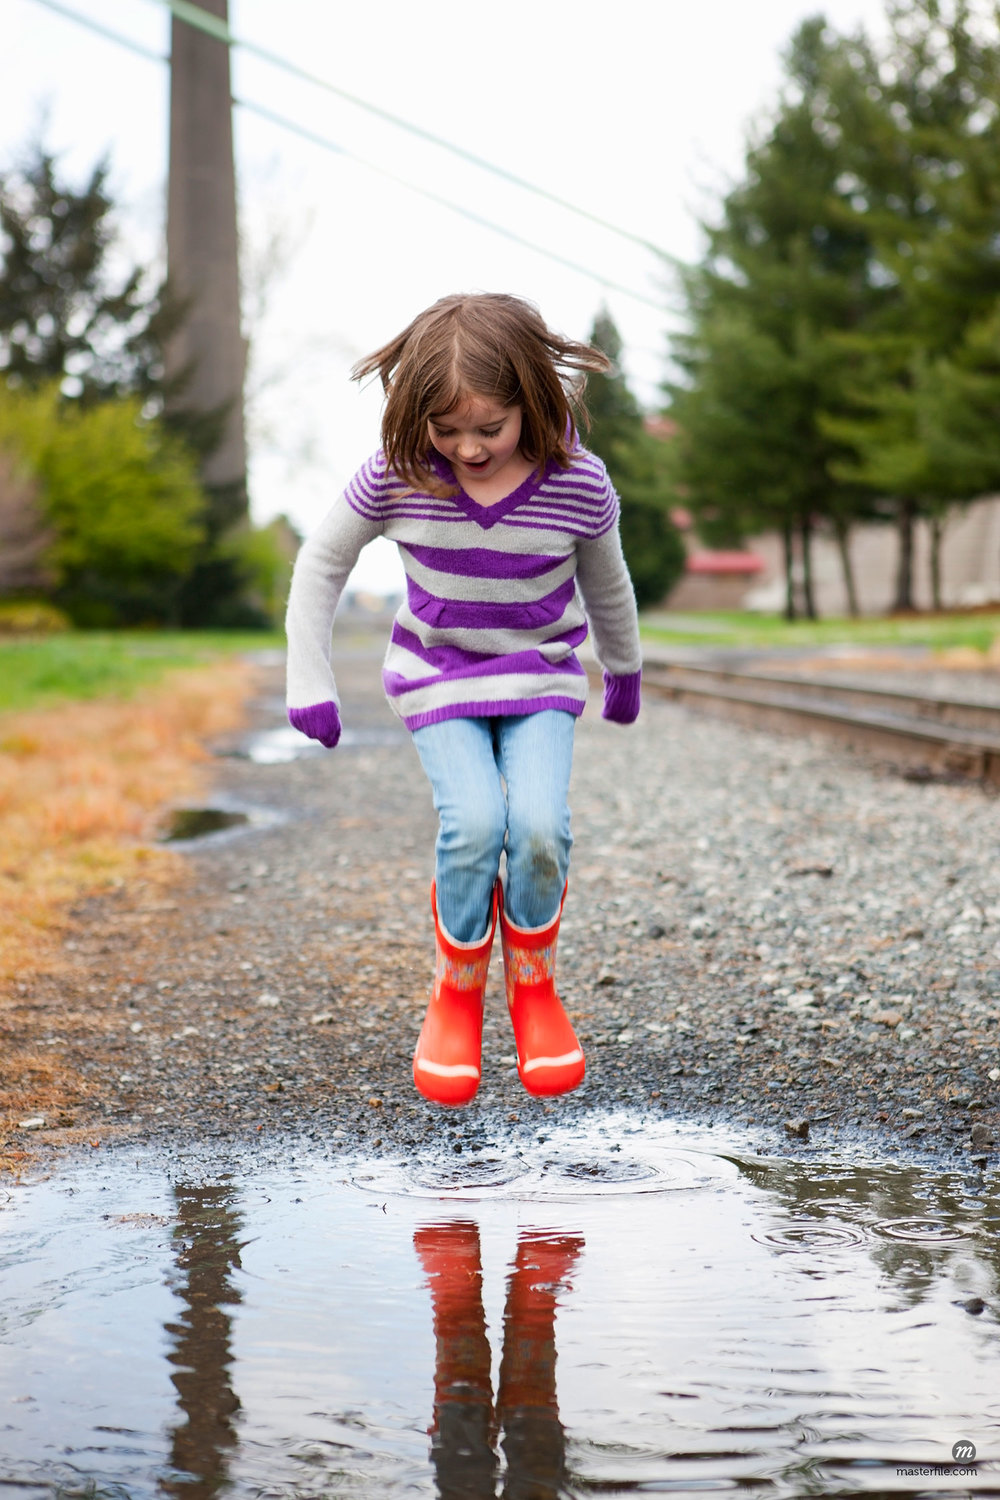 Girl Jumping in Puddle © Ty Milford / Masterfile